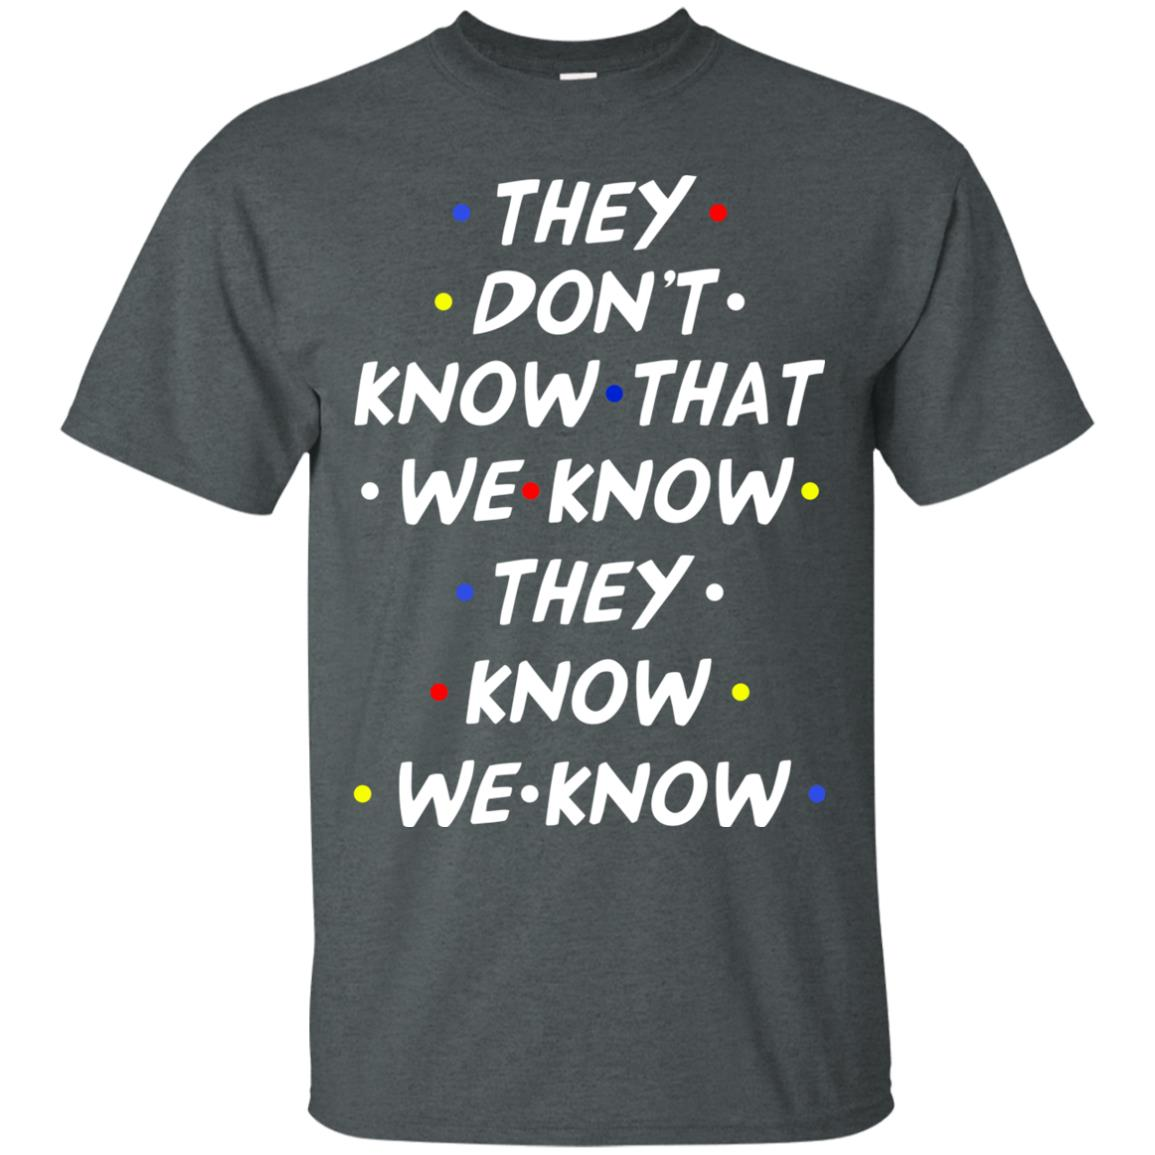 image 525px They dont know that we know they know we know shirt, hoodies, tank